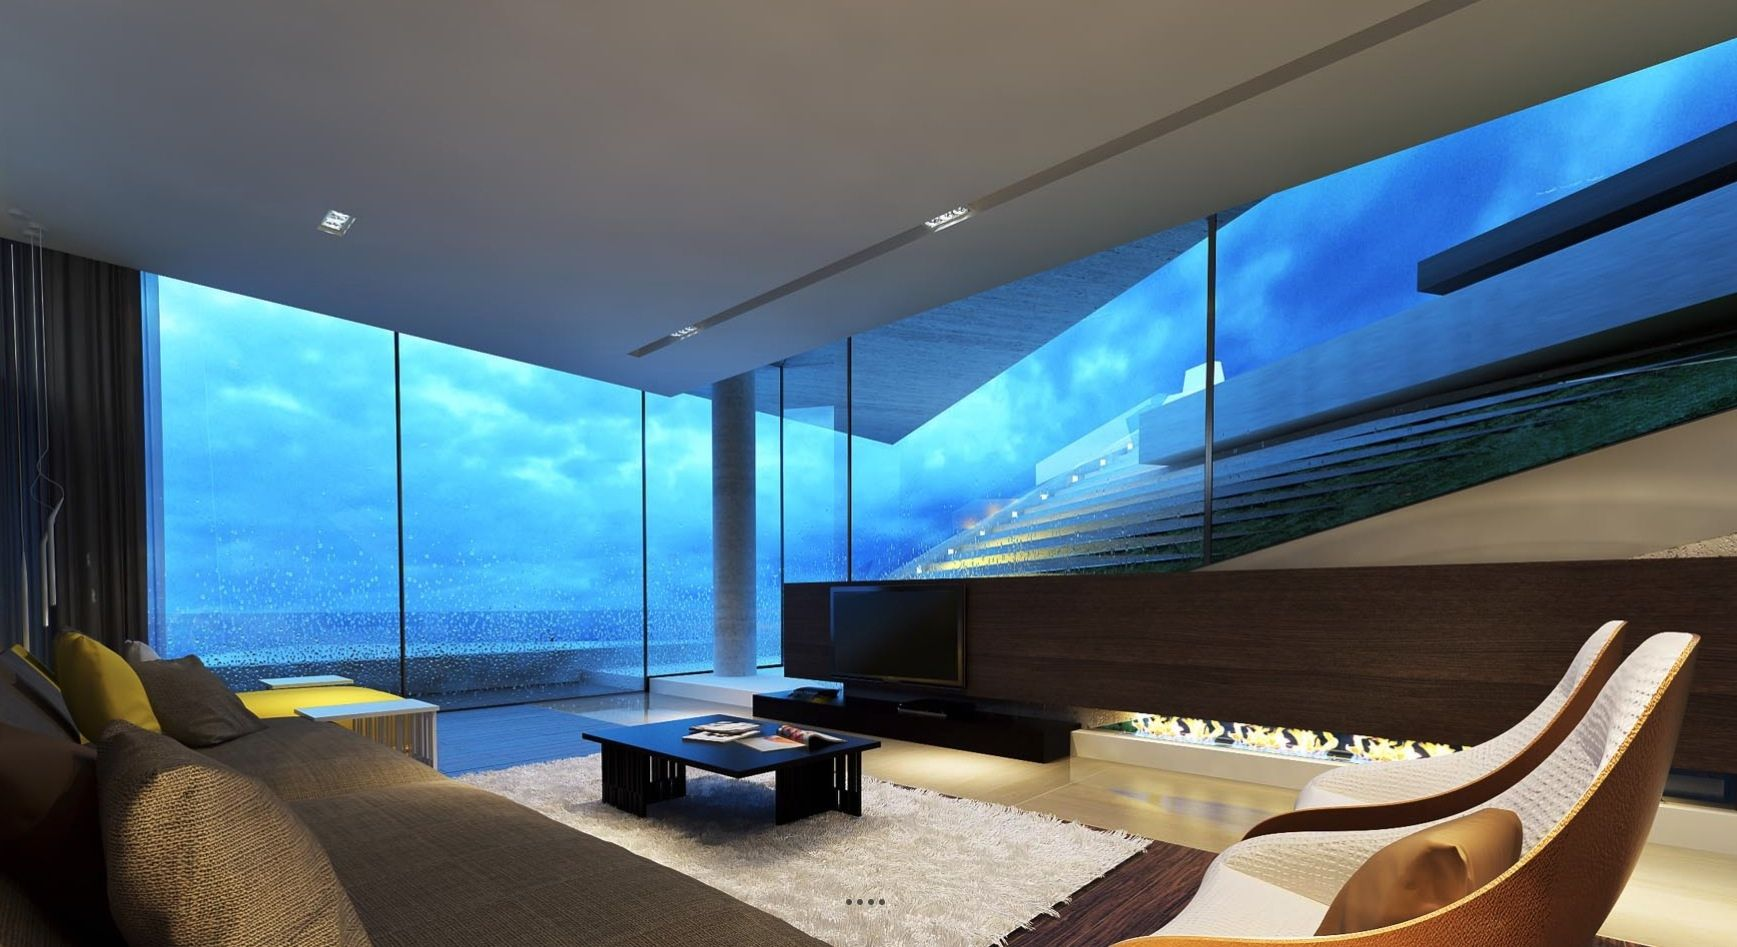 Beau Surrounding By Glass And Stunning Views, The Last Thing This Ultra Modern  Living Room Needs Is The Obligatory Television.